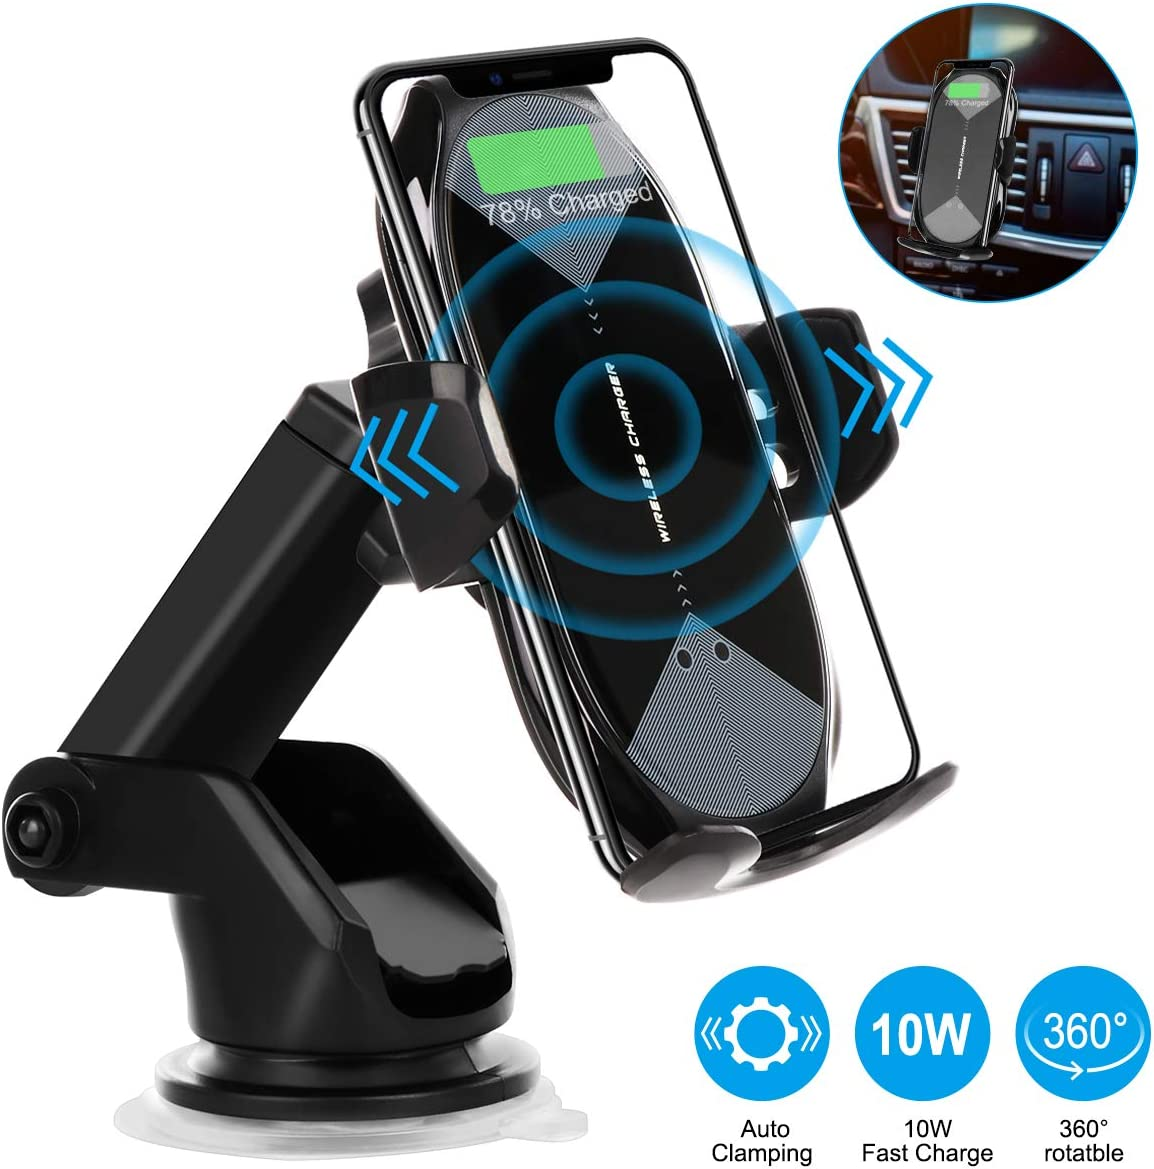 Wireless Car Charger Mount, HonShoop Auto-Clamping Qi 10W 7.5W Fast Charging Car Phone Holder Air Vent Compatible with iPhone X/XR/Xs/Xs Max/8/8 Plus ect